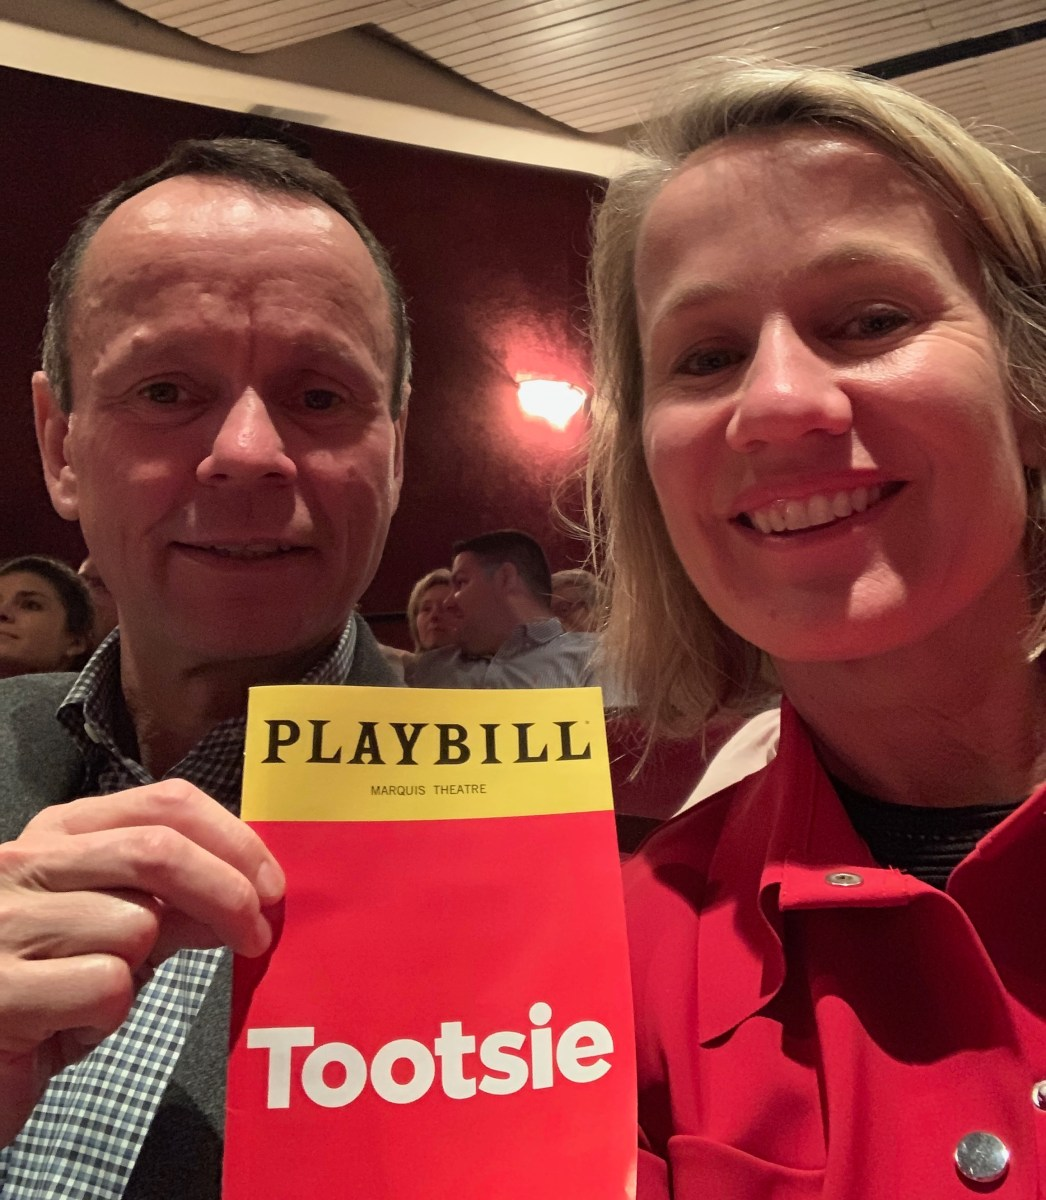 Grab Your Group and Go Laugh Together at Tootsie